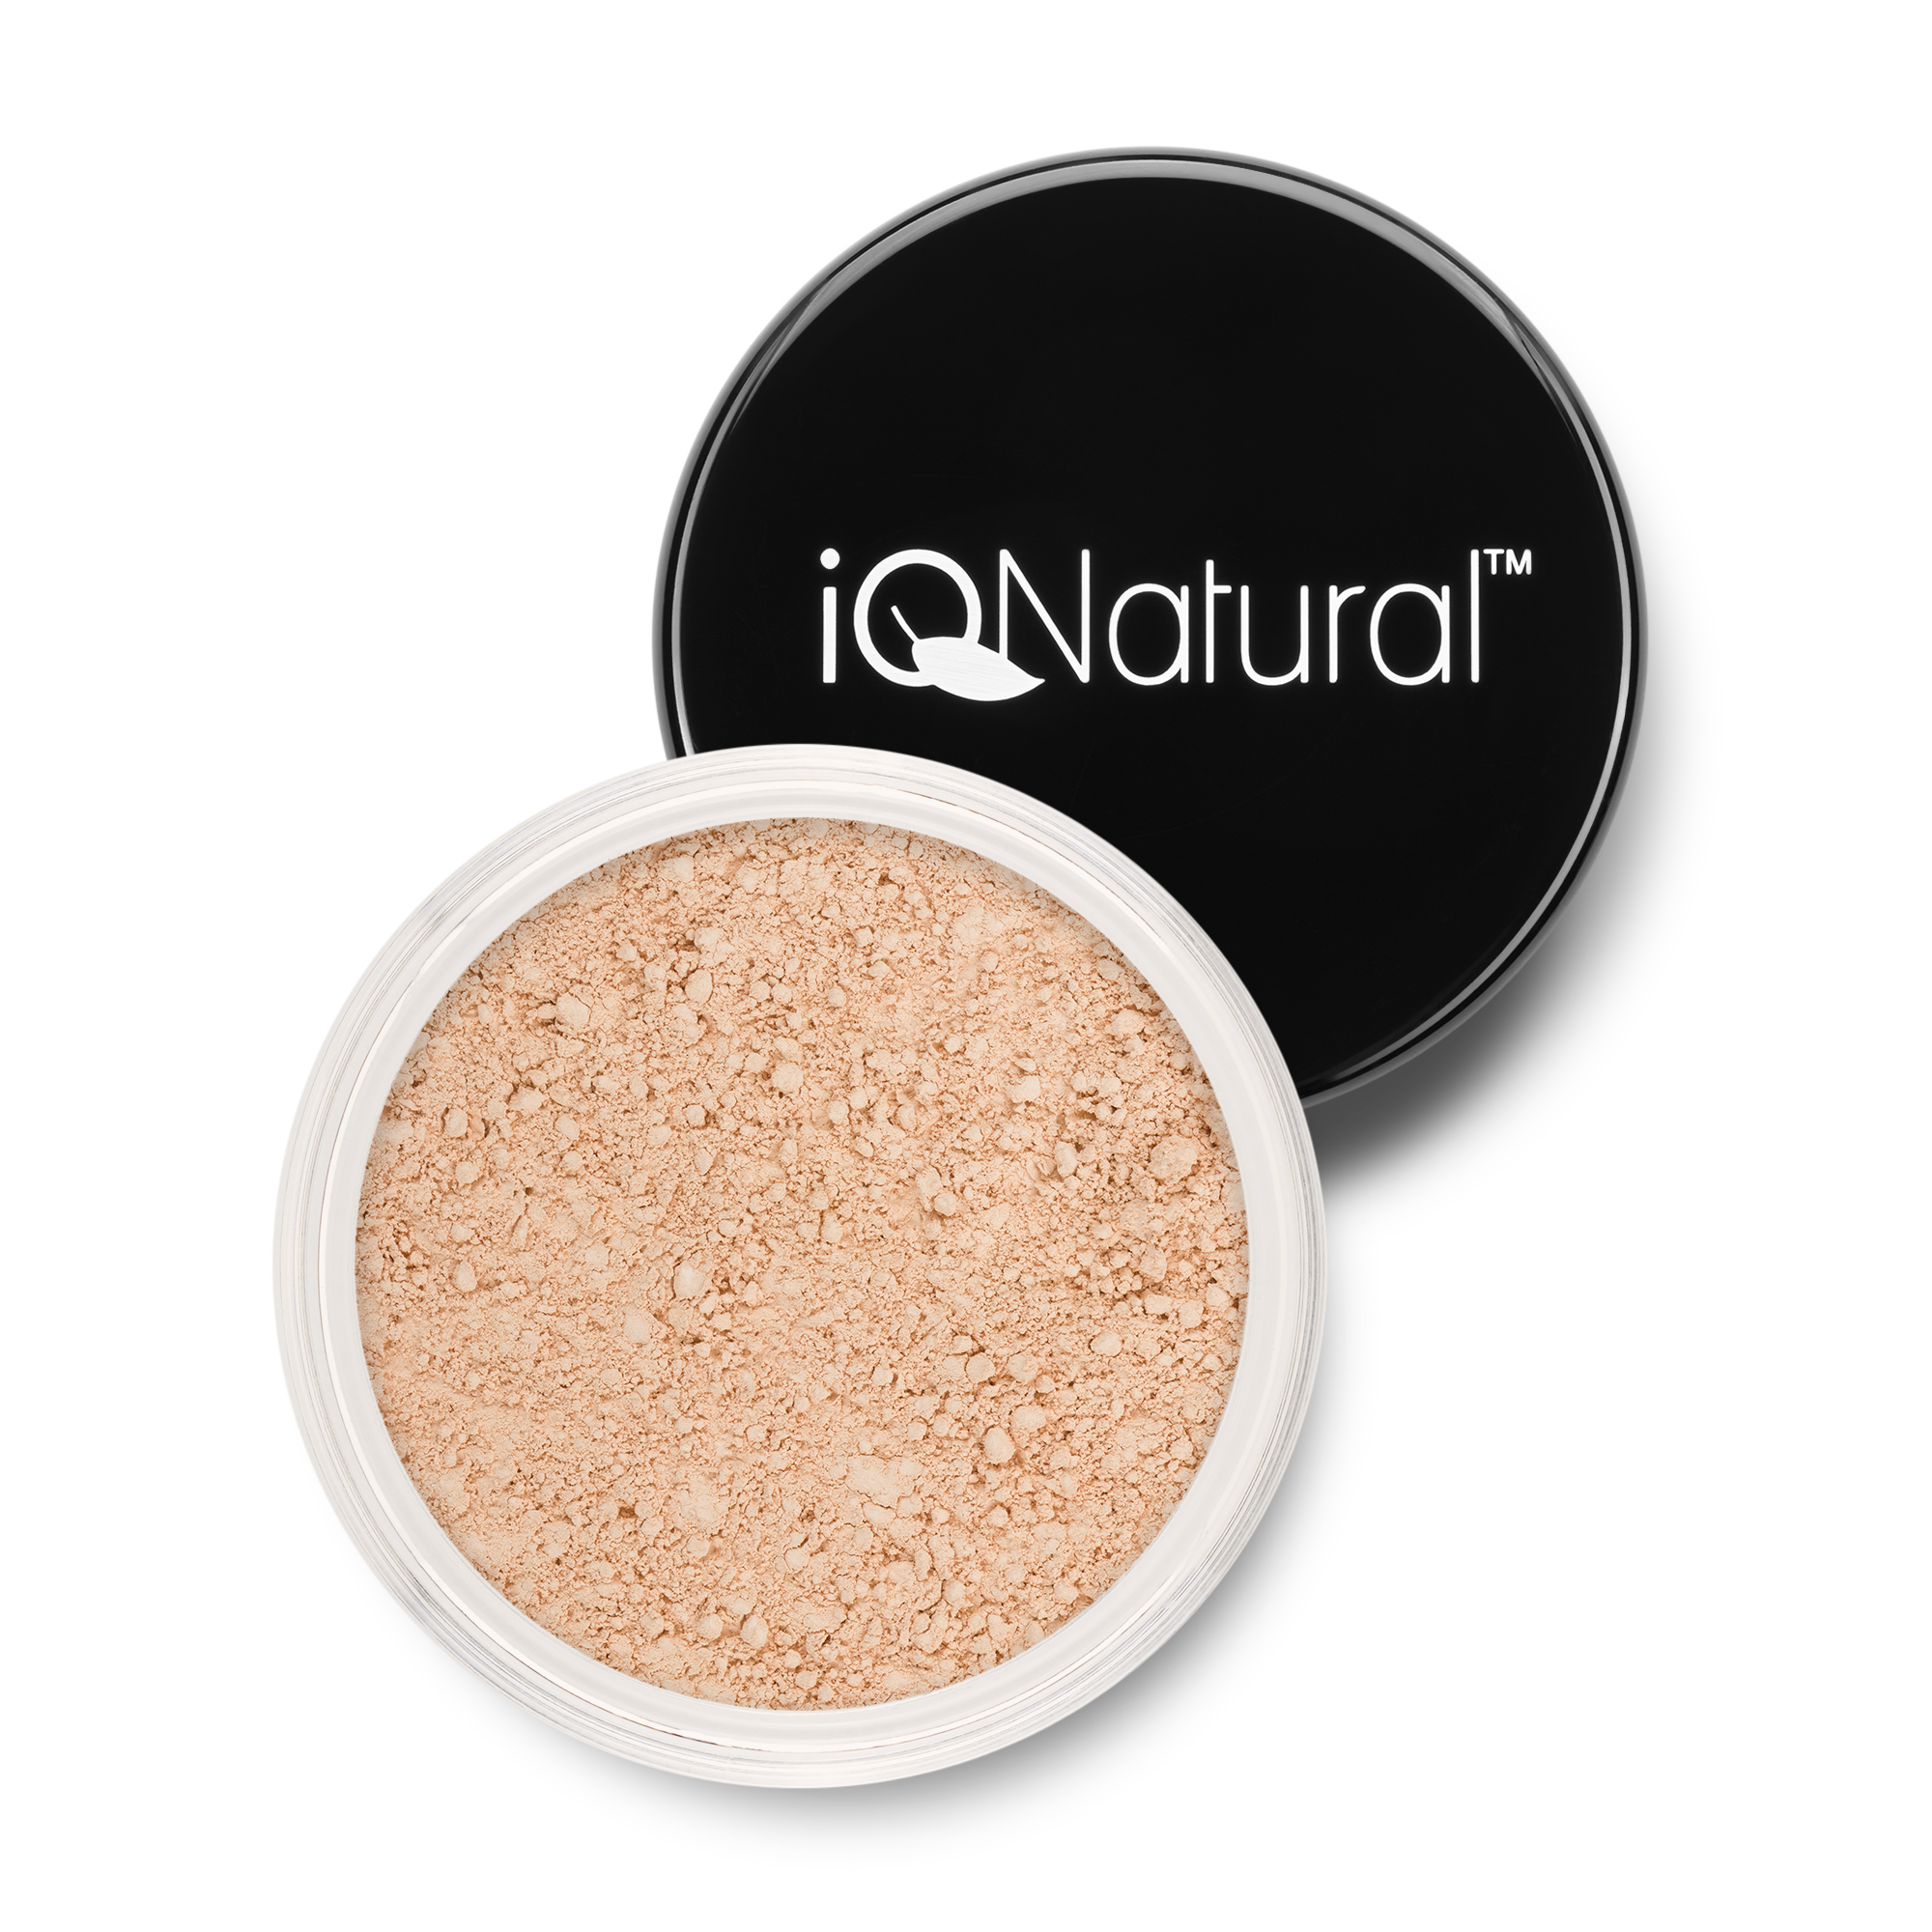 Organic powder product photo